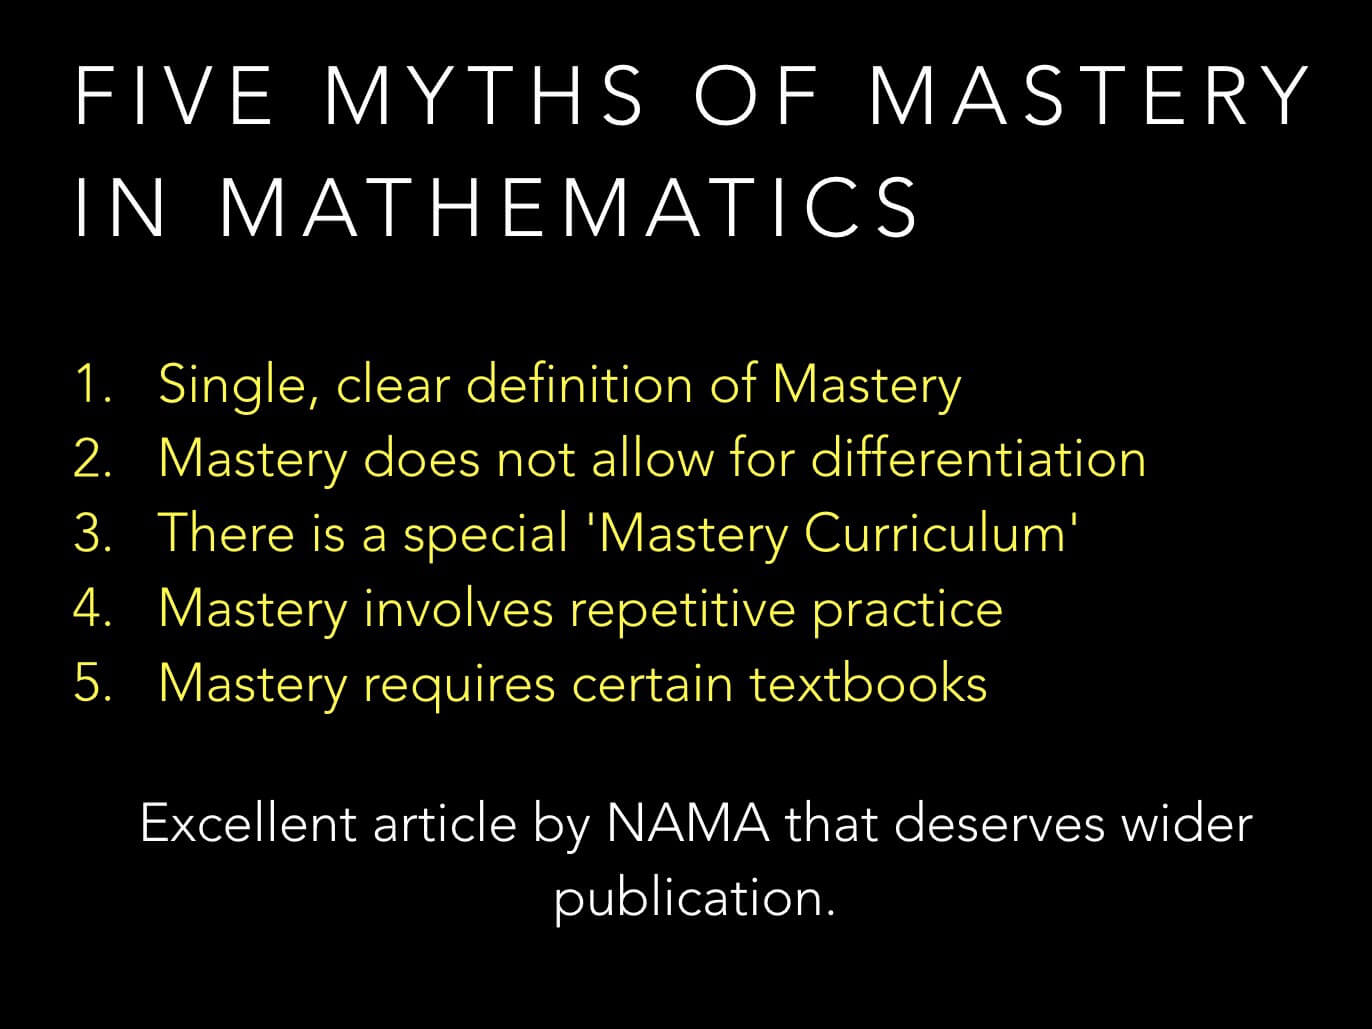 Five Myths of Mastery in Mathematics